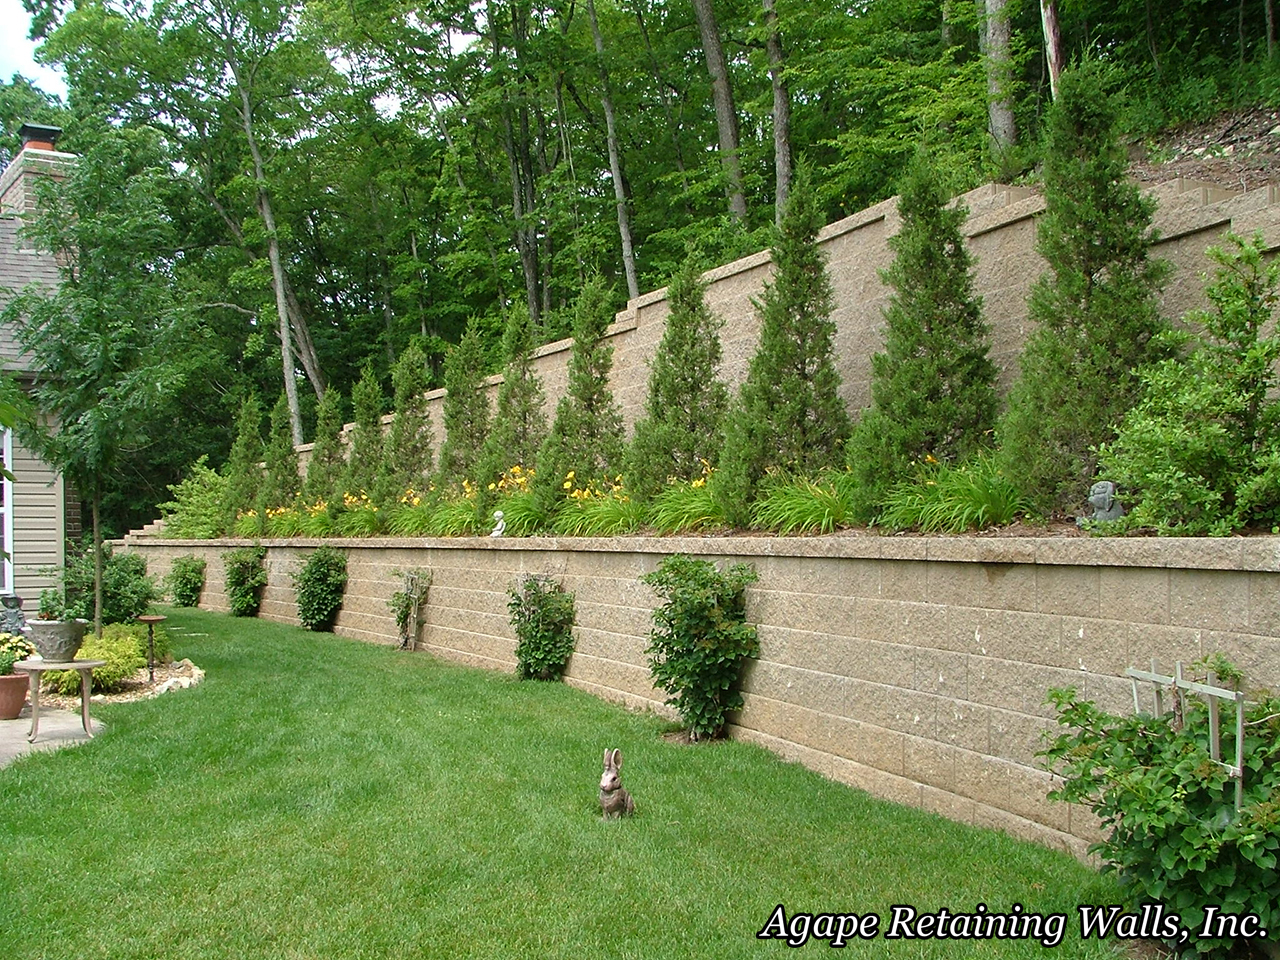 Captivating When I Say That We At Agape Retaining Walls, Inc. Are U201csimply The Bestu201d  This Job States My Case As Well As Any. Our Retaining Wall Design And  Installation ...